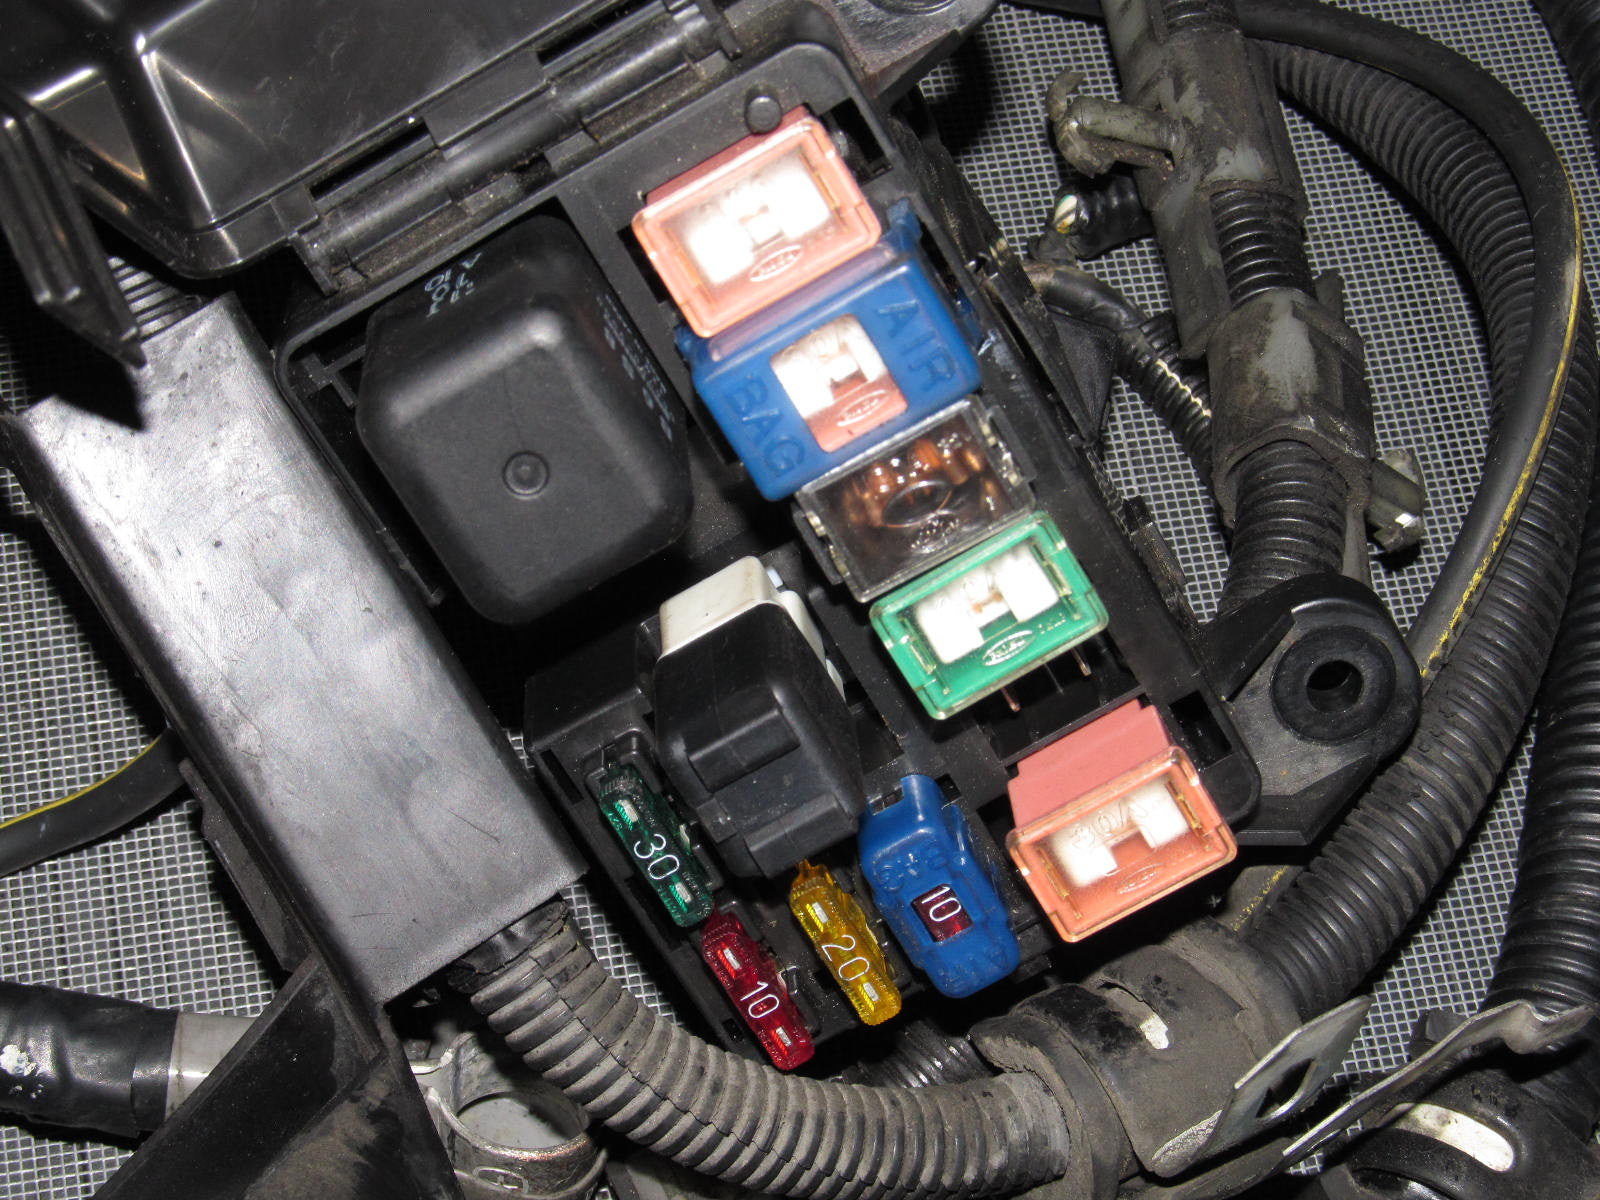 91 Miata Fuse Box Location 26 Wiring Diagram Images Mazda Protege Engine Img 3742v1407462079 90 92 93 Transmission